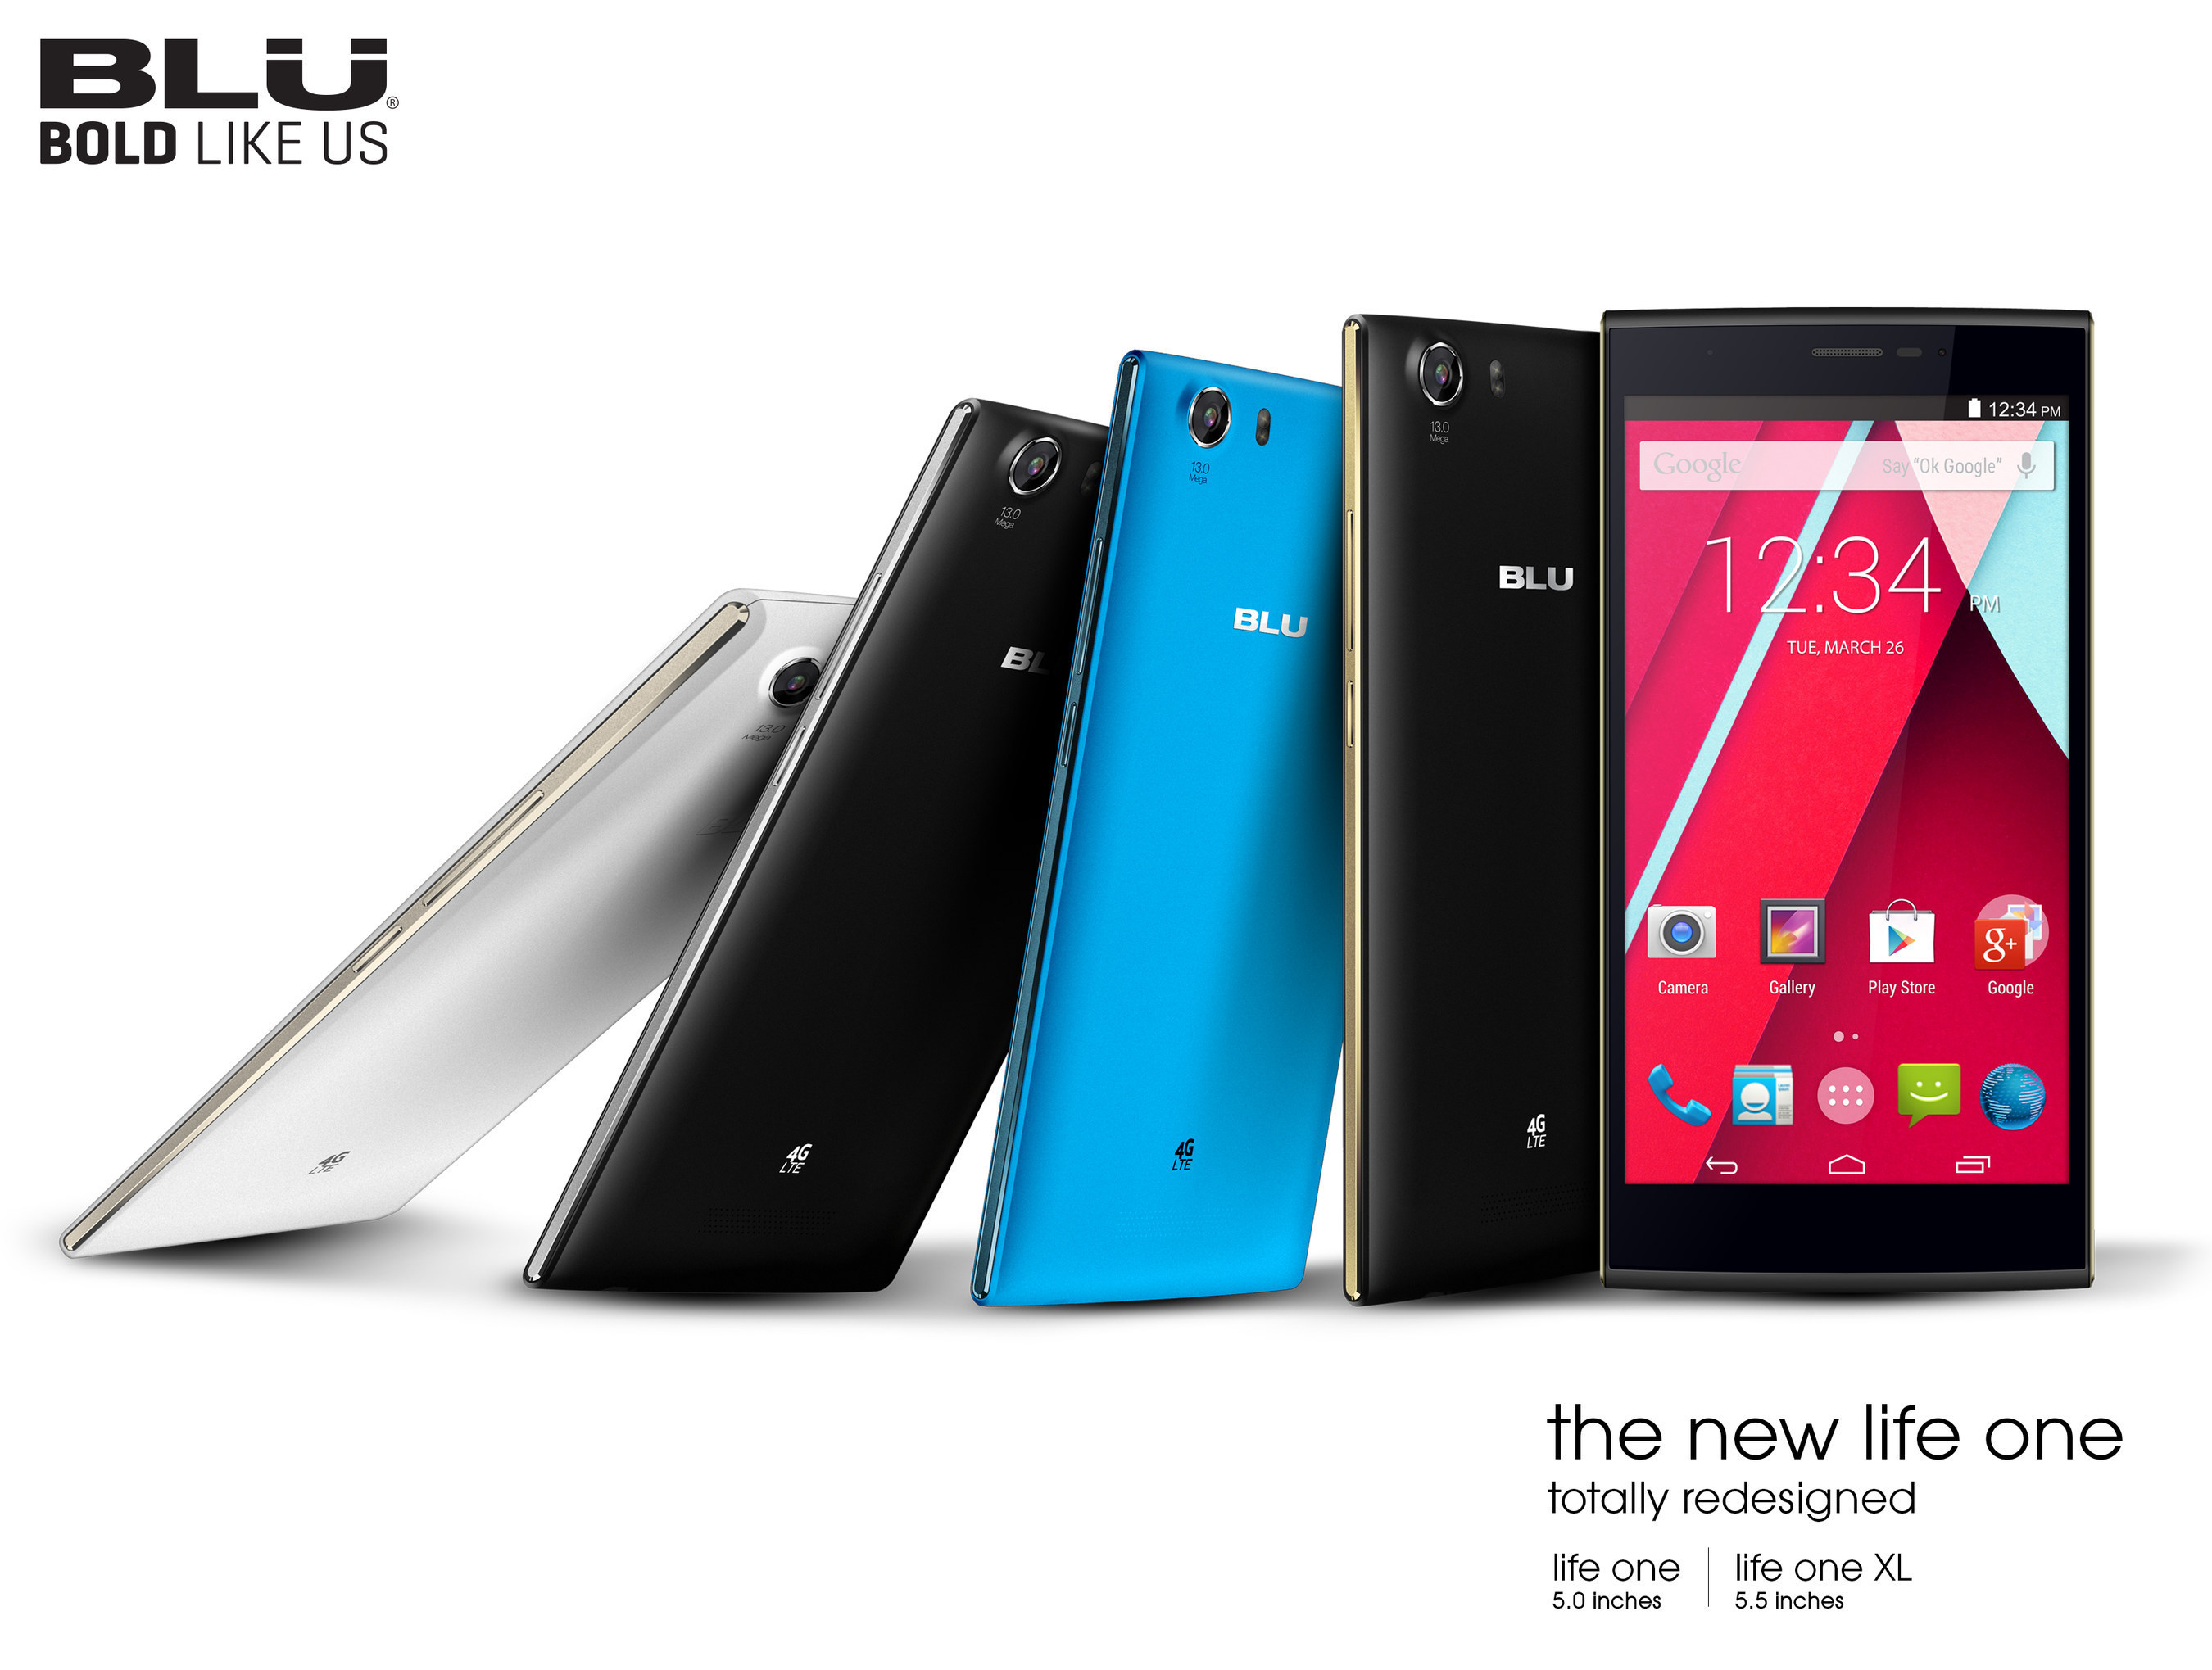 blu products launches new